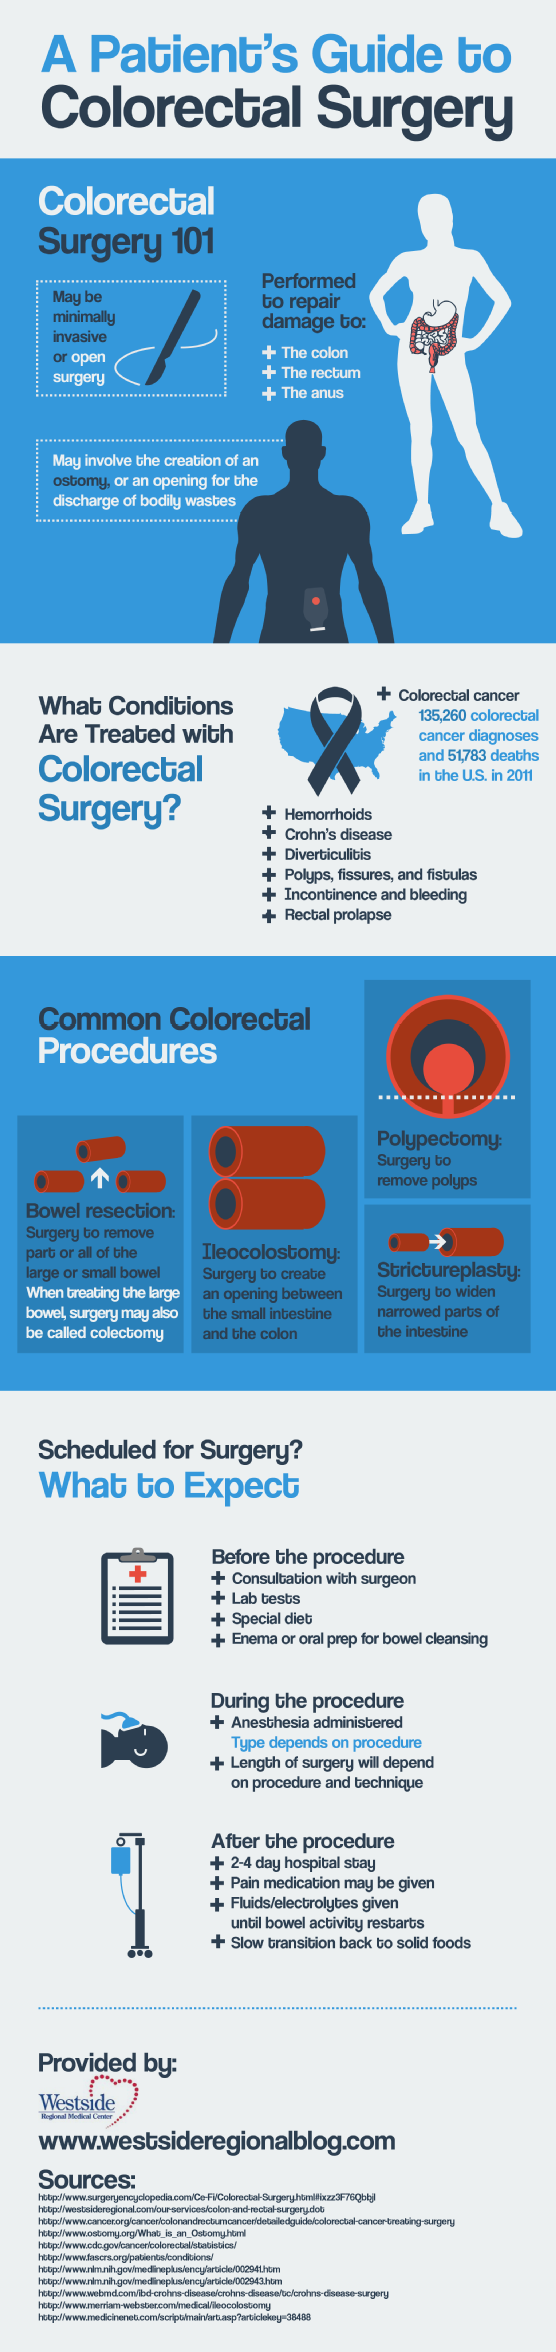 Did you know that there were 135, 260 colorectal cancer diagnoses and 51,783 deaths in the U.S in 20